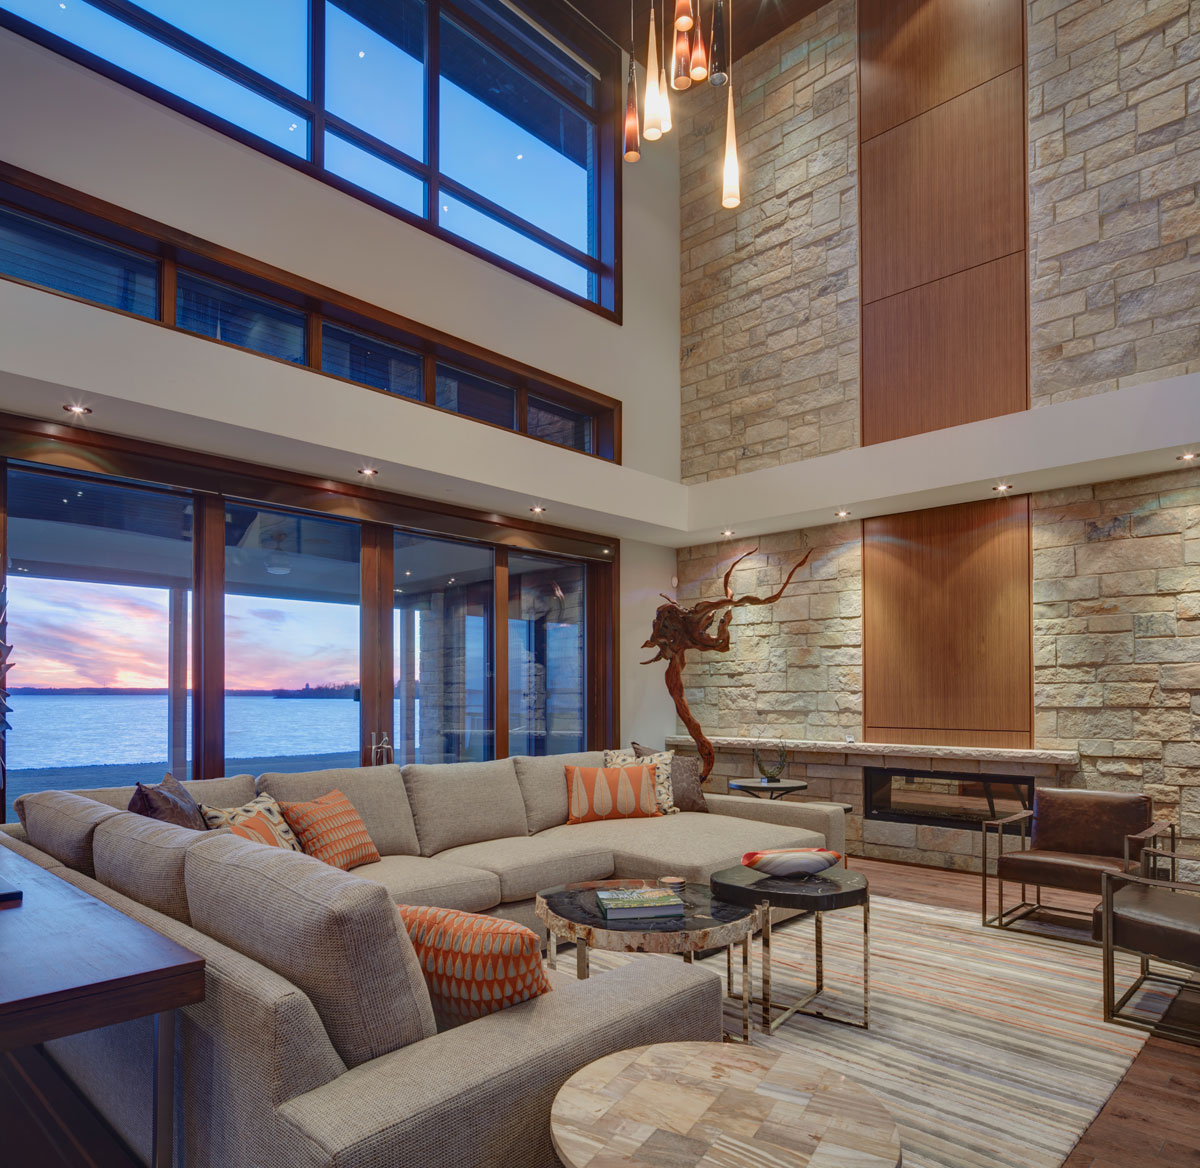 Luxury Home Lake Maine: Luxury Residence By FDM Designs